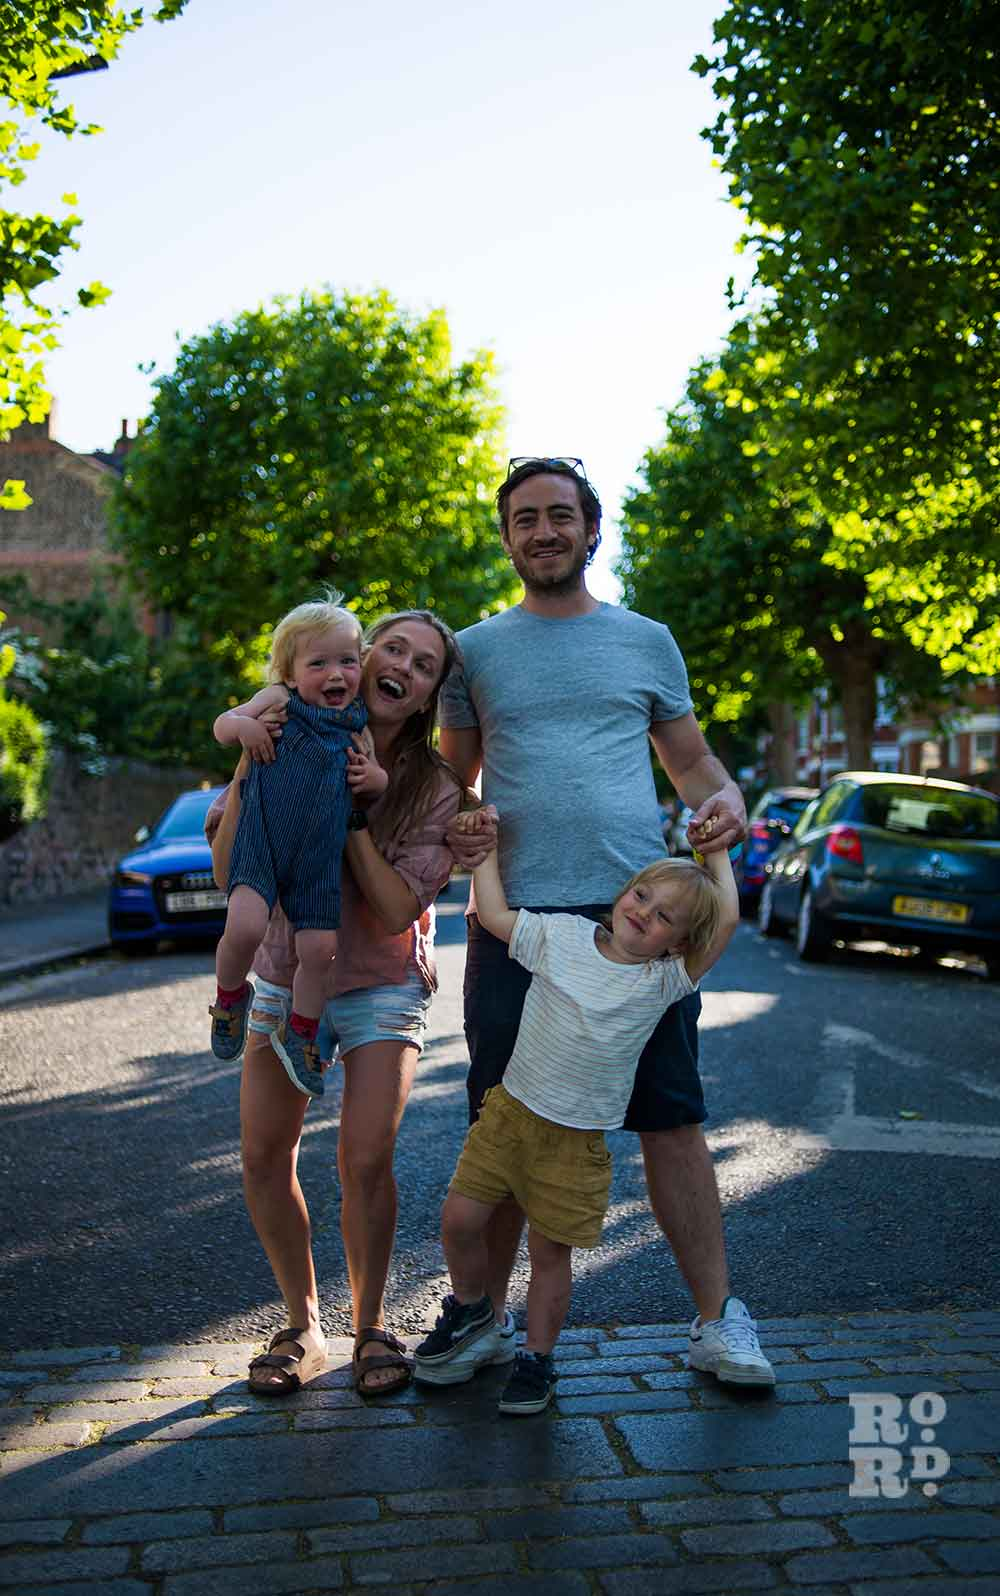 Lucy and family environmental portraits by Matt Payne